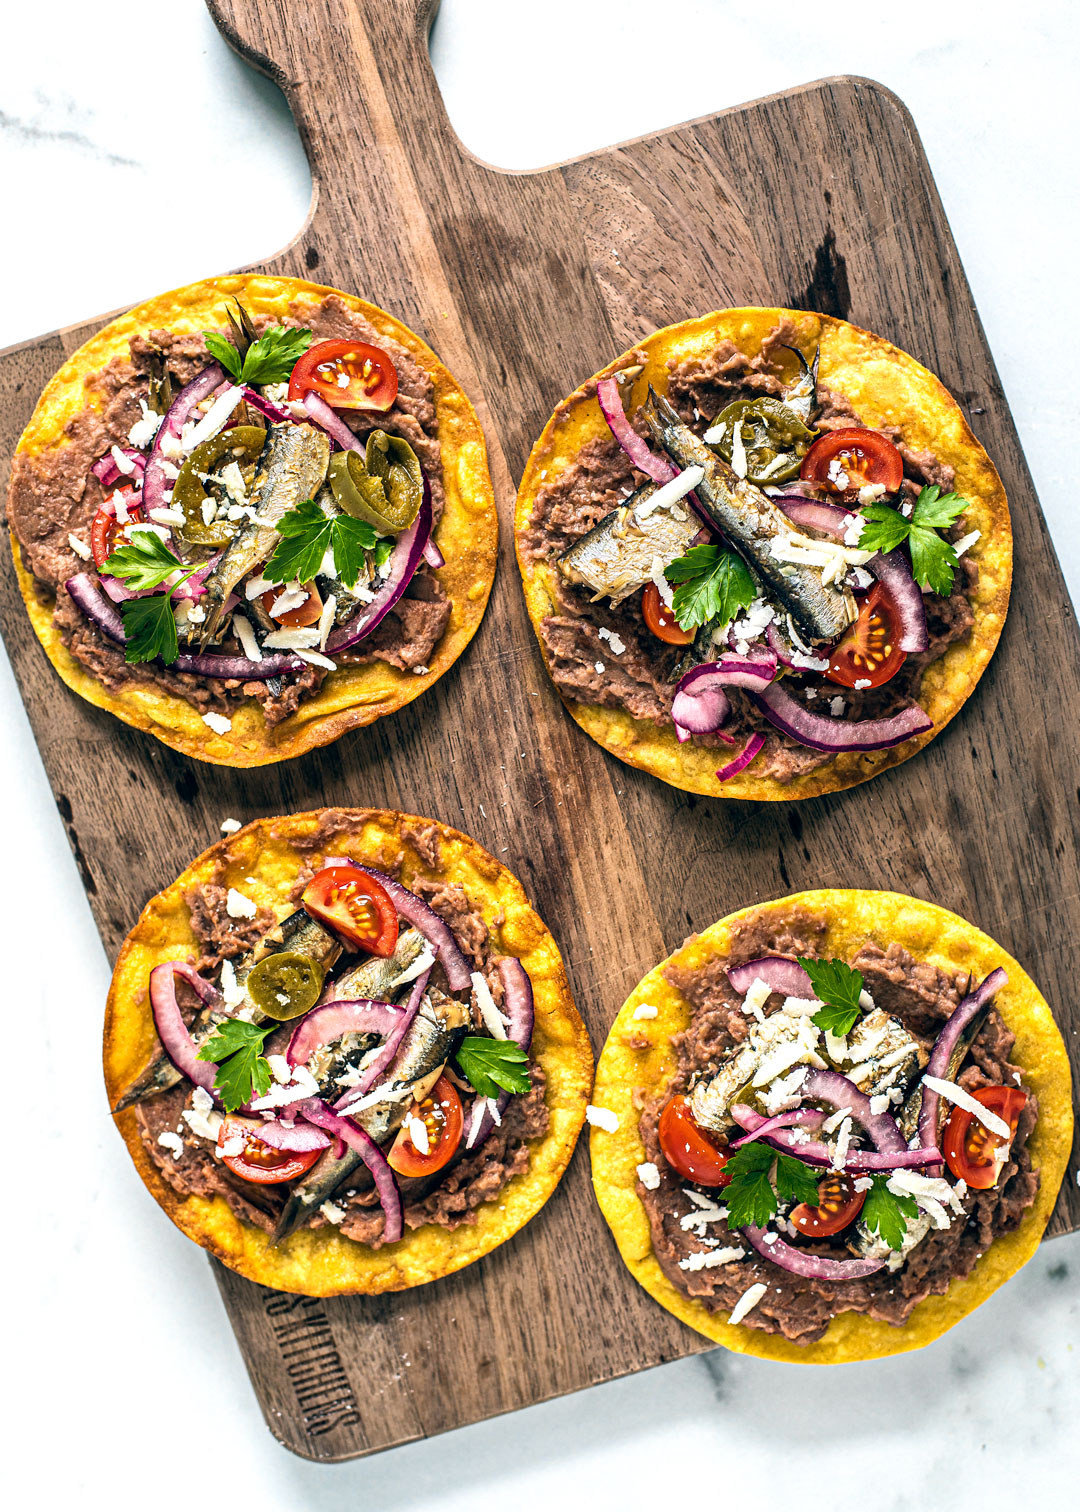 Wooden serving board with spicy tostadas on top.